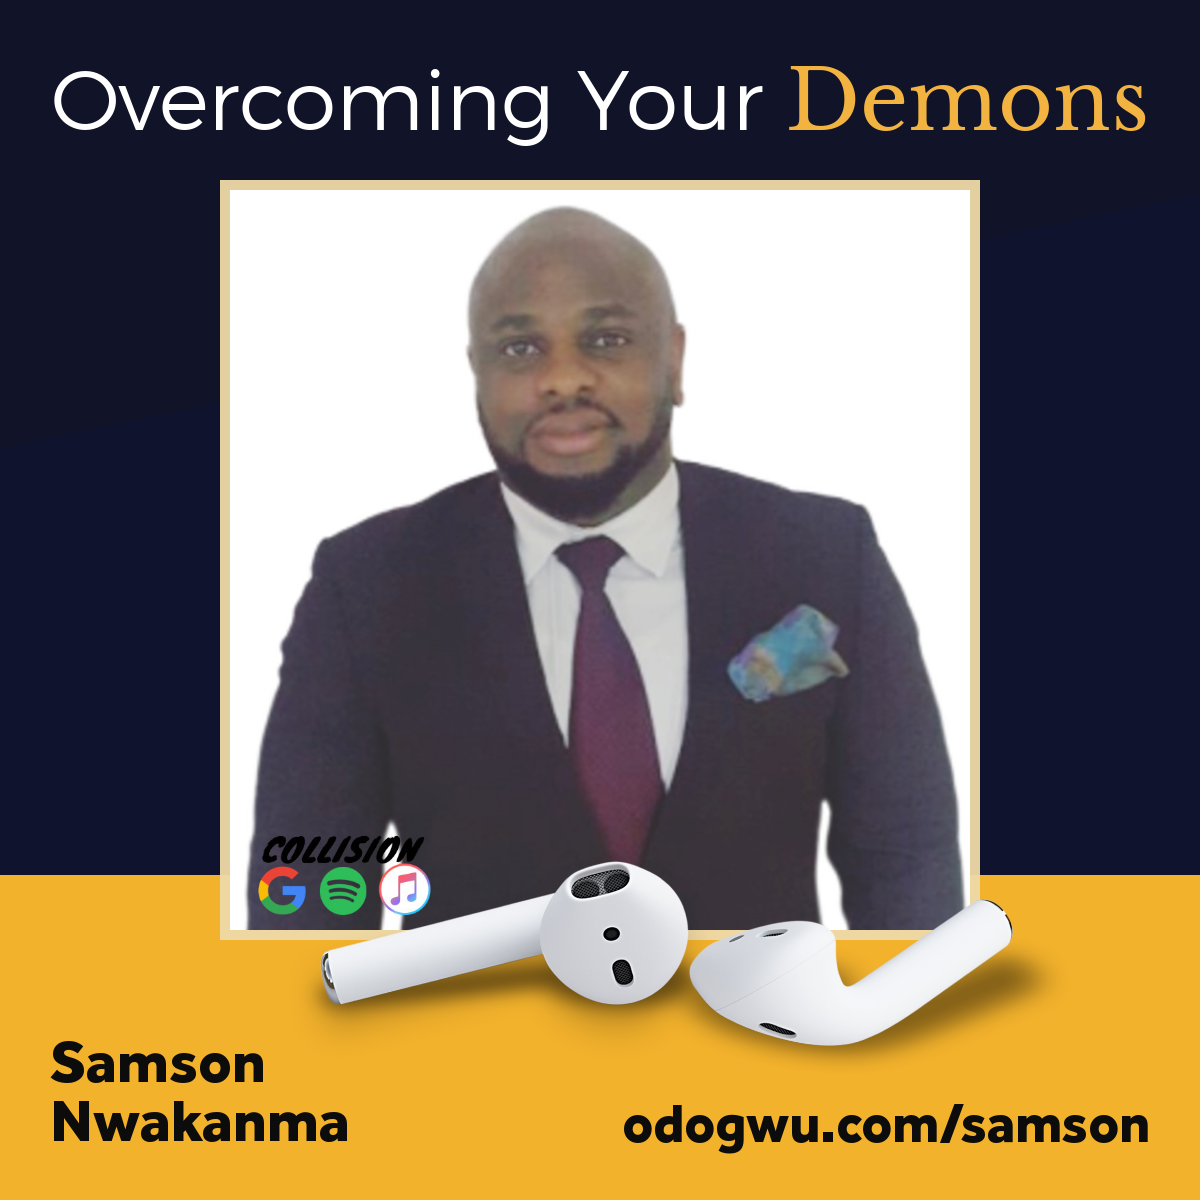 Samson Nwakanma Discusses How To Overcome Your Demons